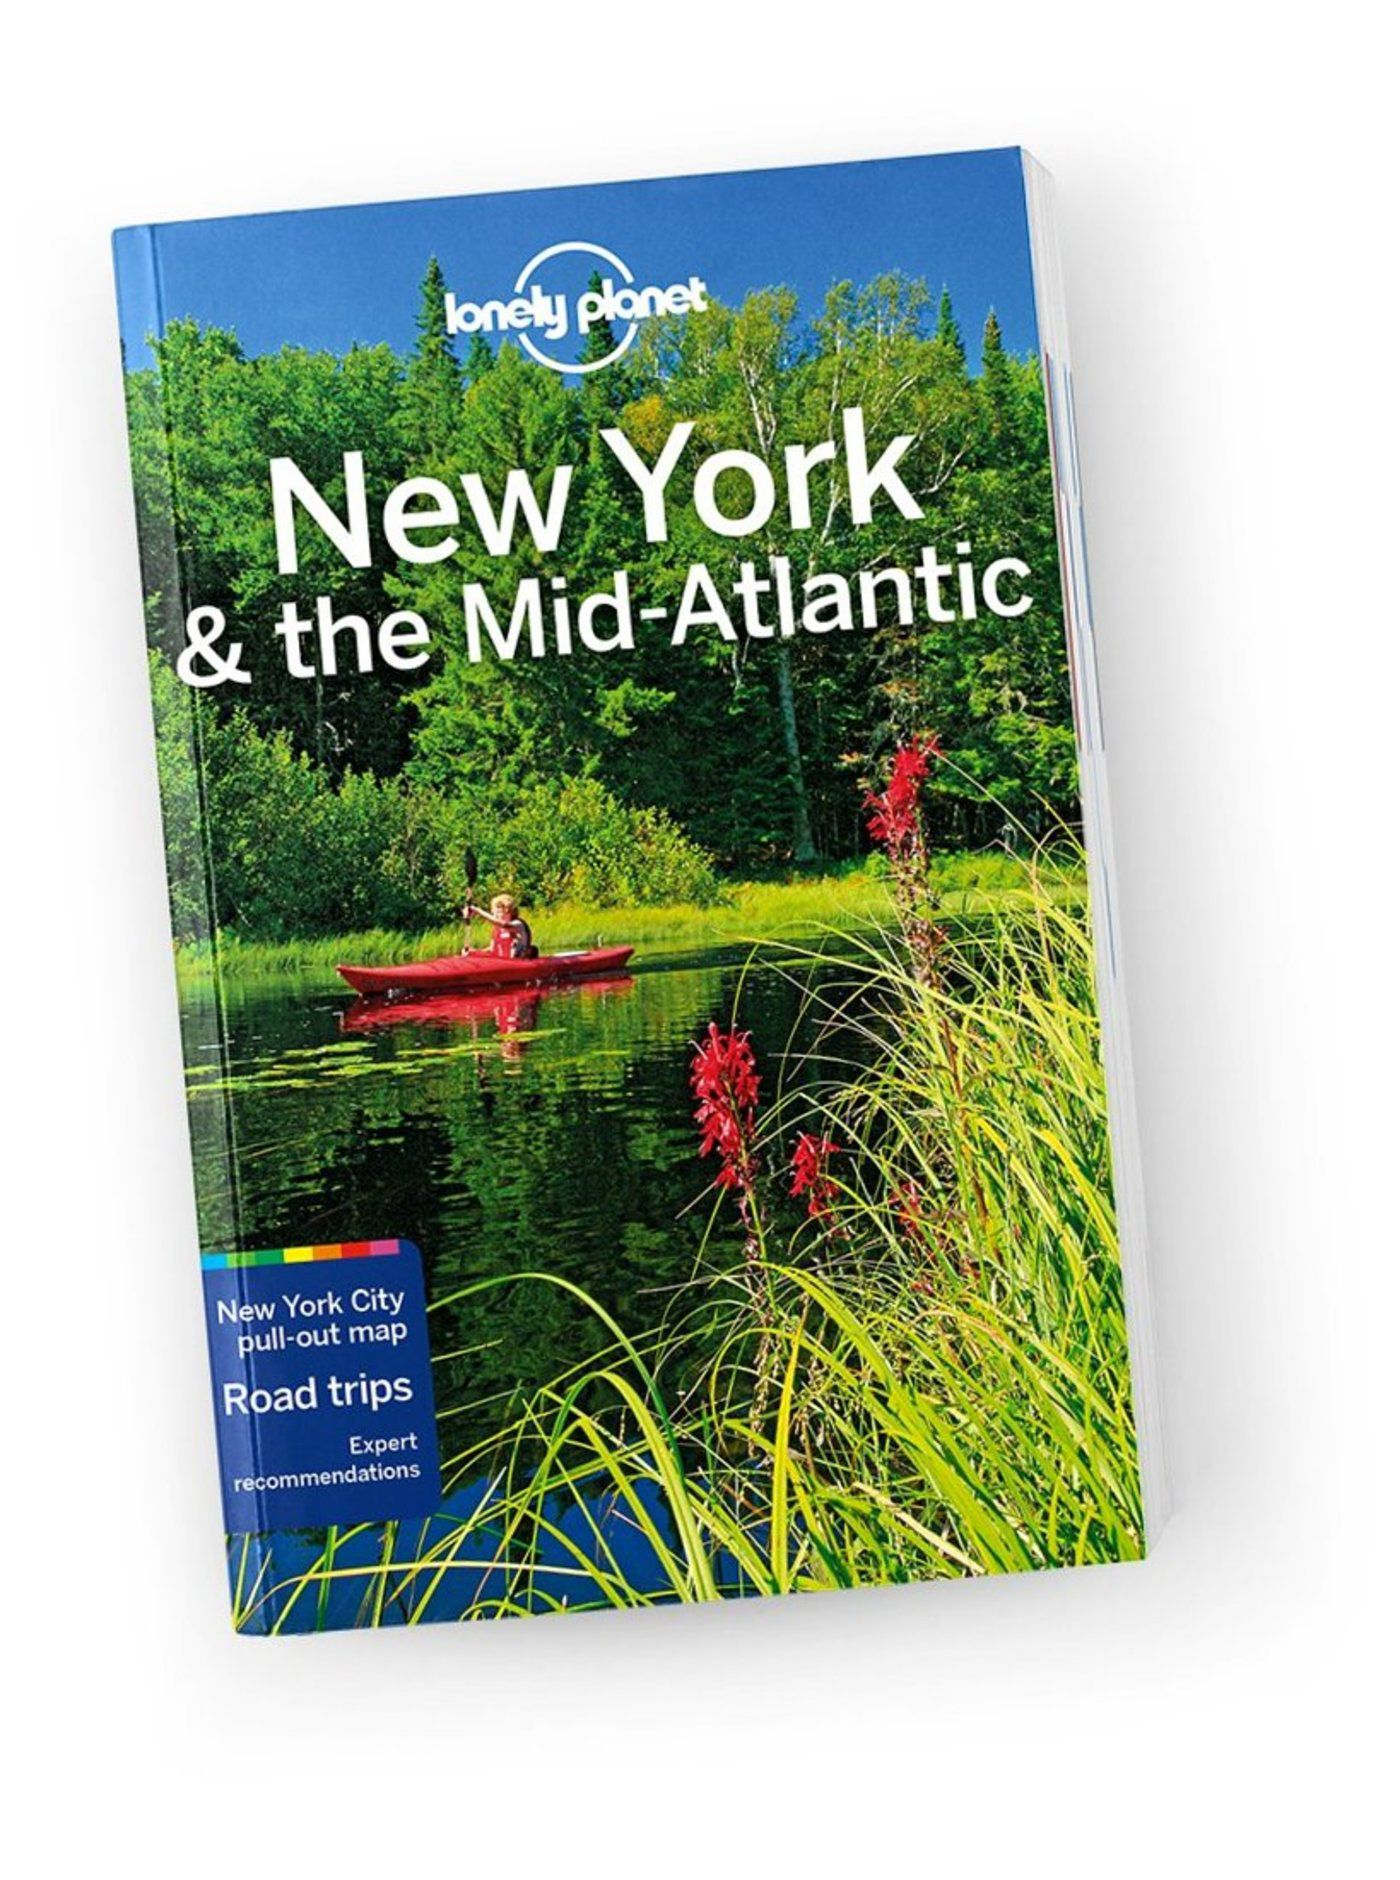 New York & the Mid-Atlantic travel guide